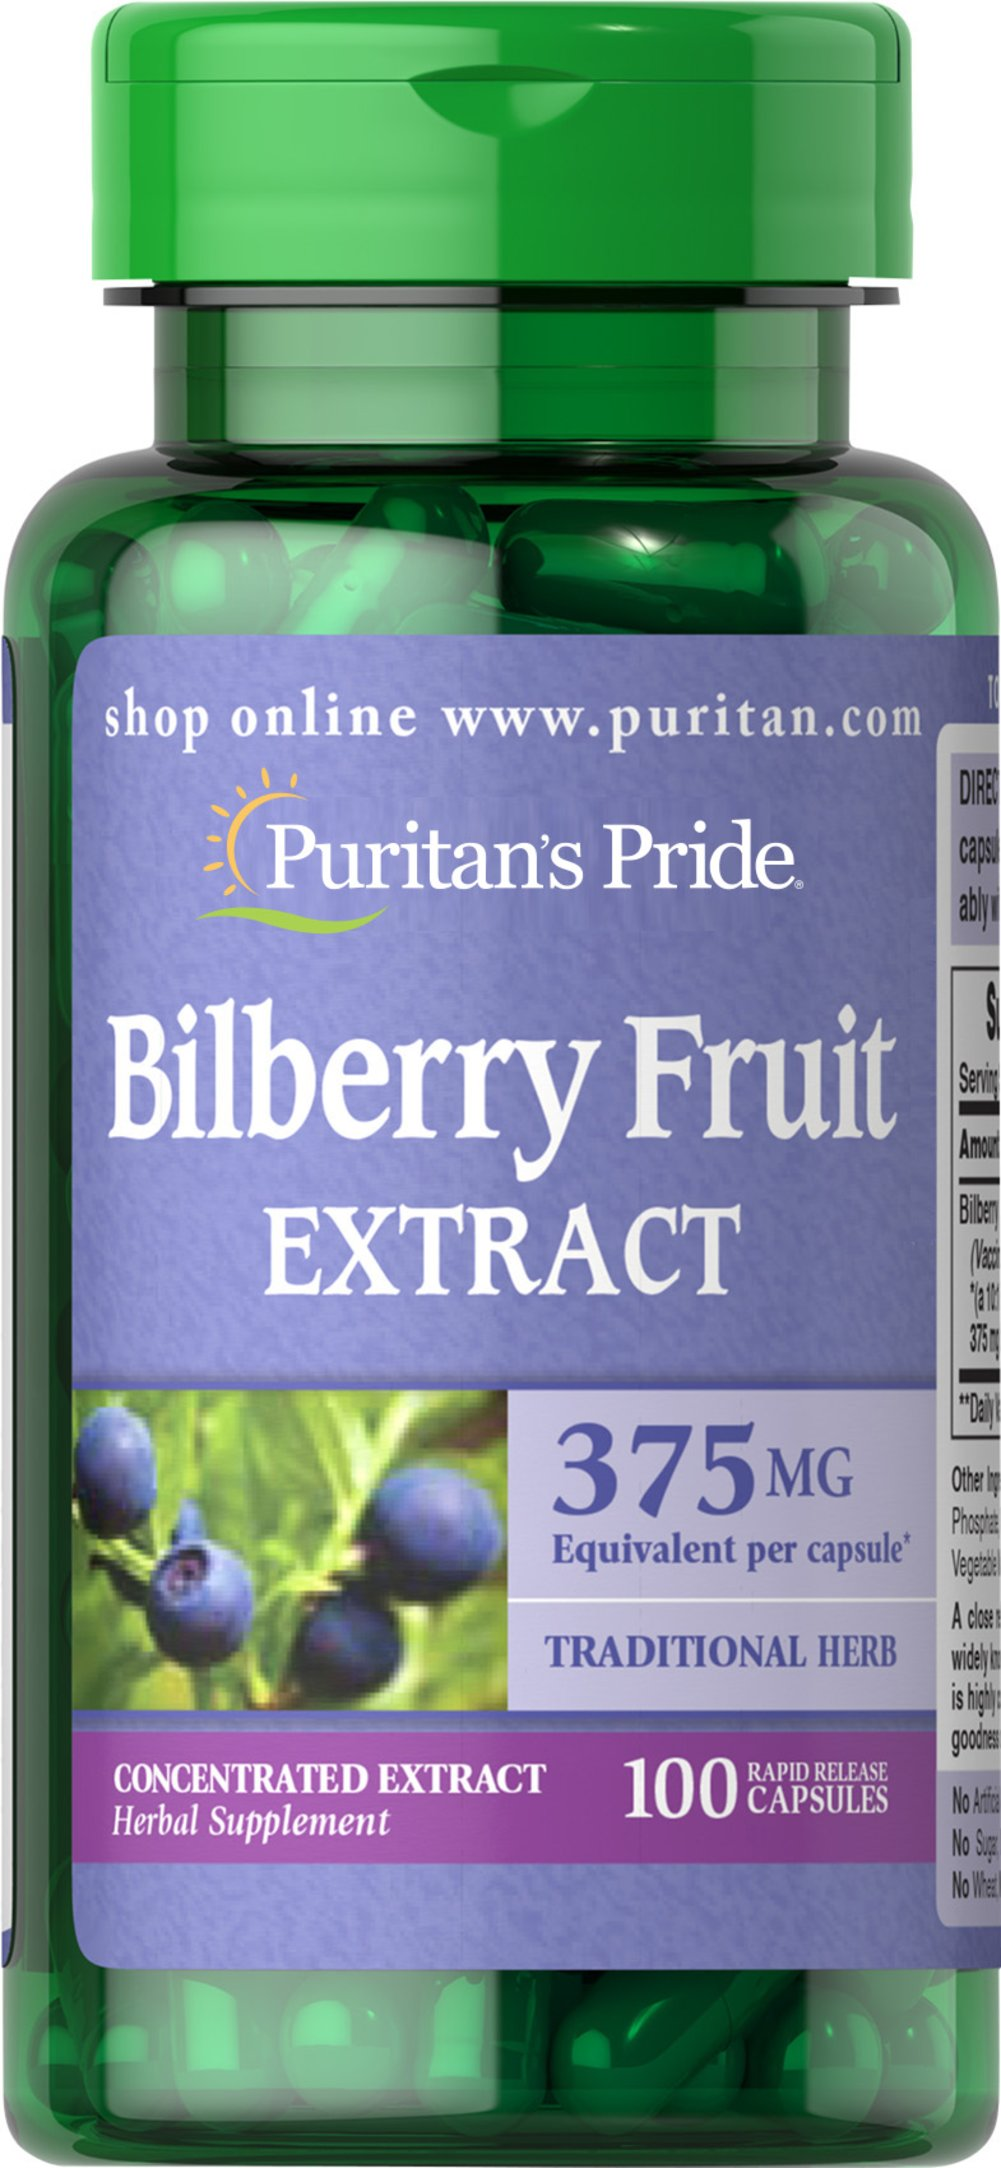 Bilberry 10:1 Extract 375 mg <p>Bilberry is a close relative of Blueberries. Our high-quality Bilberry contains over 15 different naturally-occurring anthocyanosides, which are flavonoids that contain beneficial antioxidant properties.** This formula contains 375 mg Bilberry (Vaccinium myrtillus) (fruit) (from 37.5 mg of 10:1 Extract).</p>  100 Capsules 375 mg $9.99